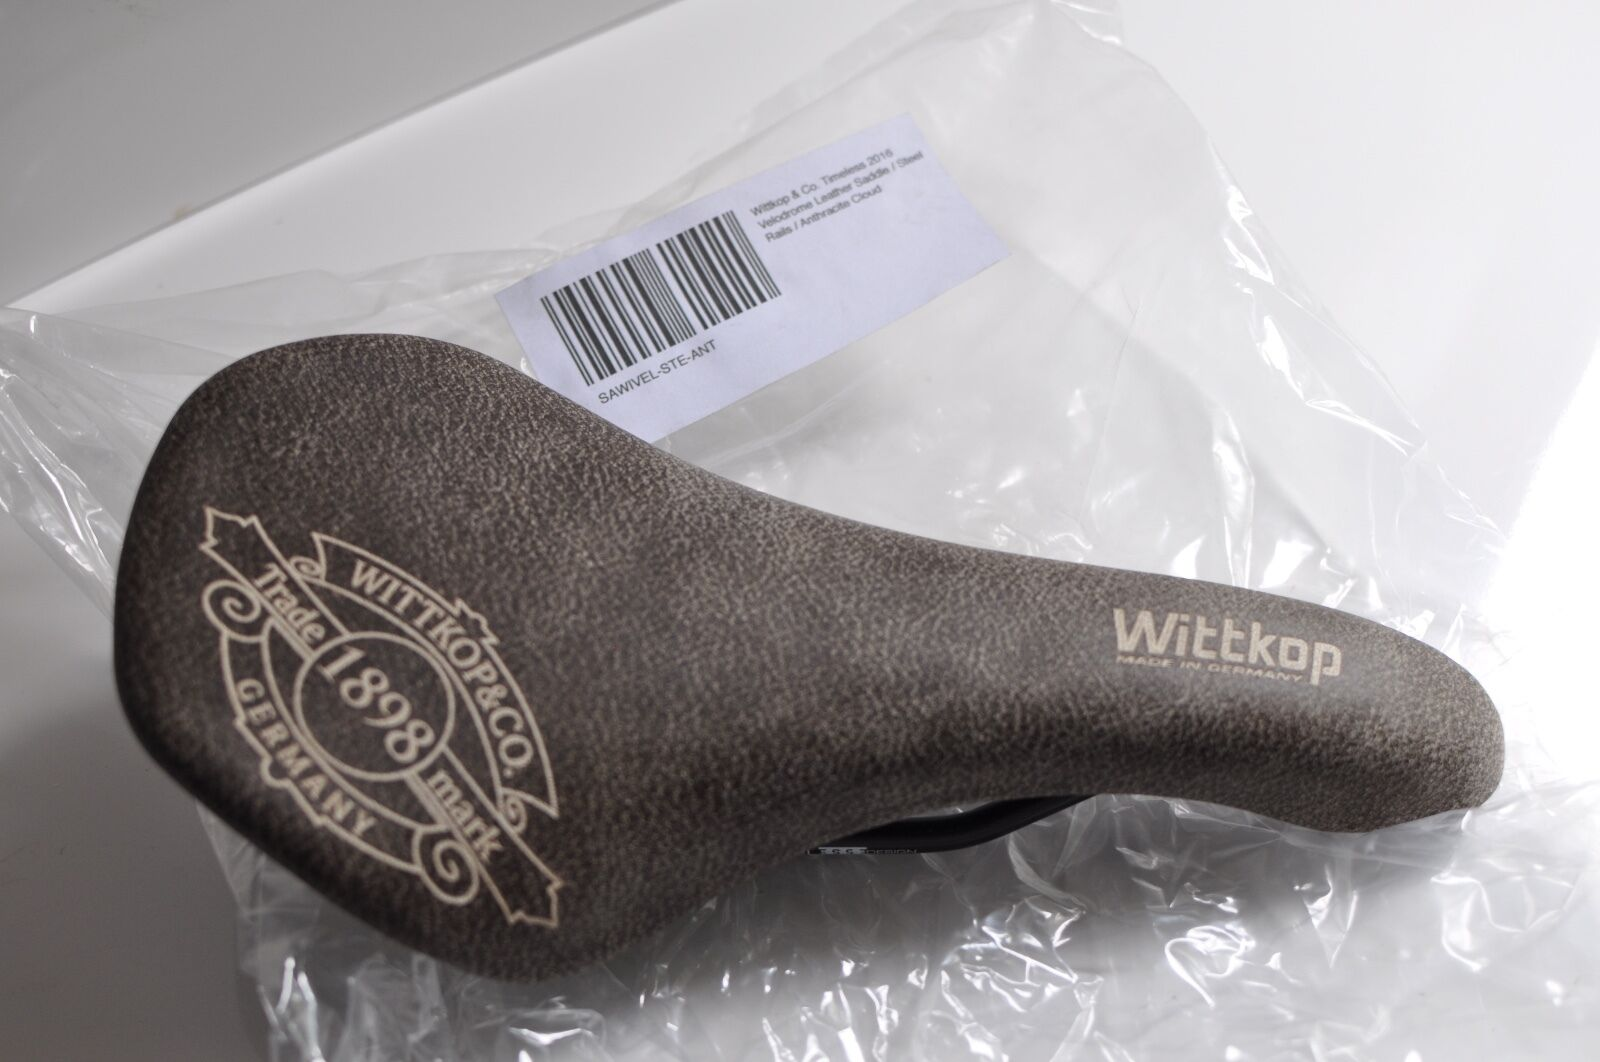 Wittkop & Co. Timeless Velodrome leather saddle anthracite cloud made in Germany